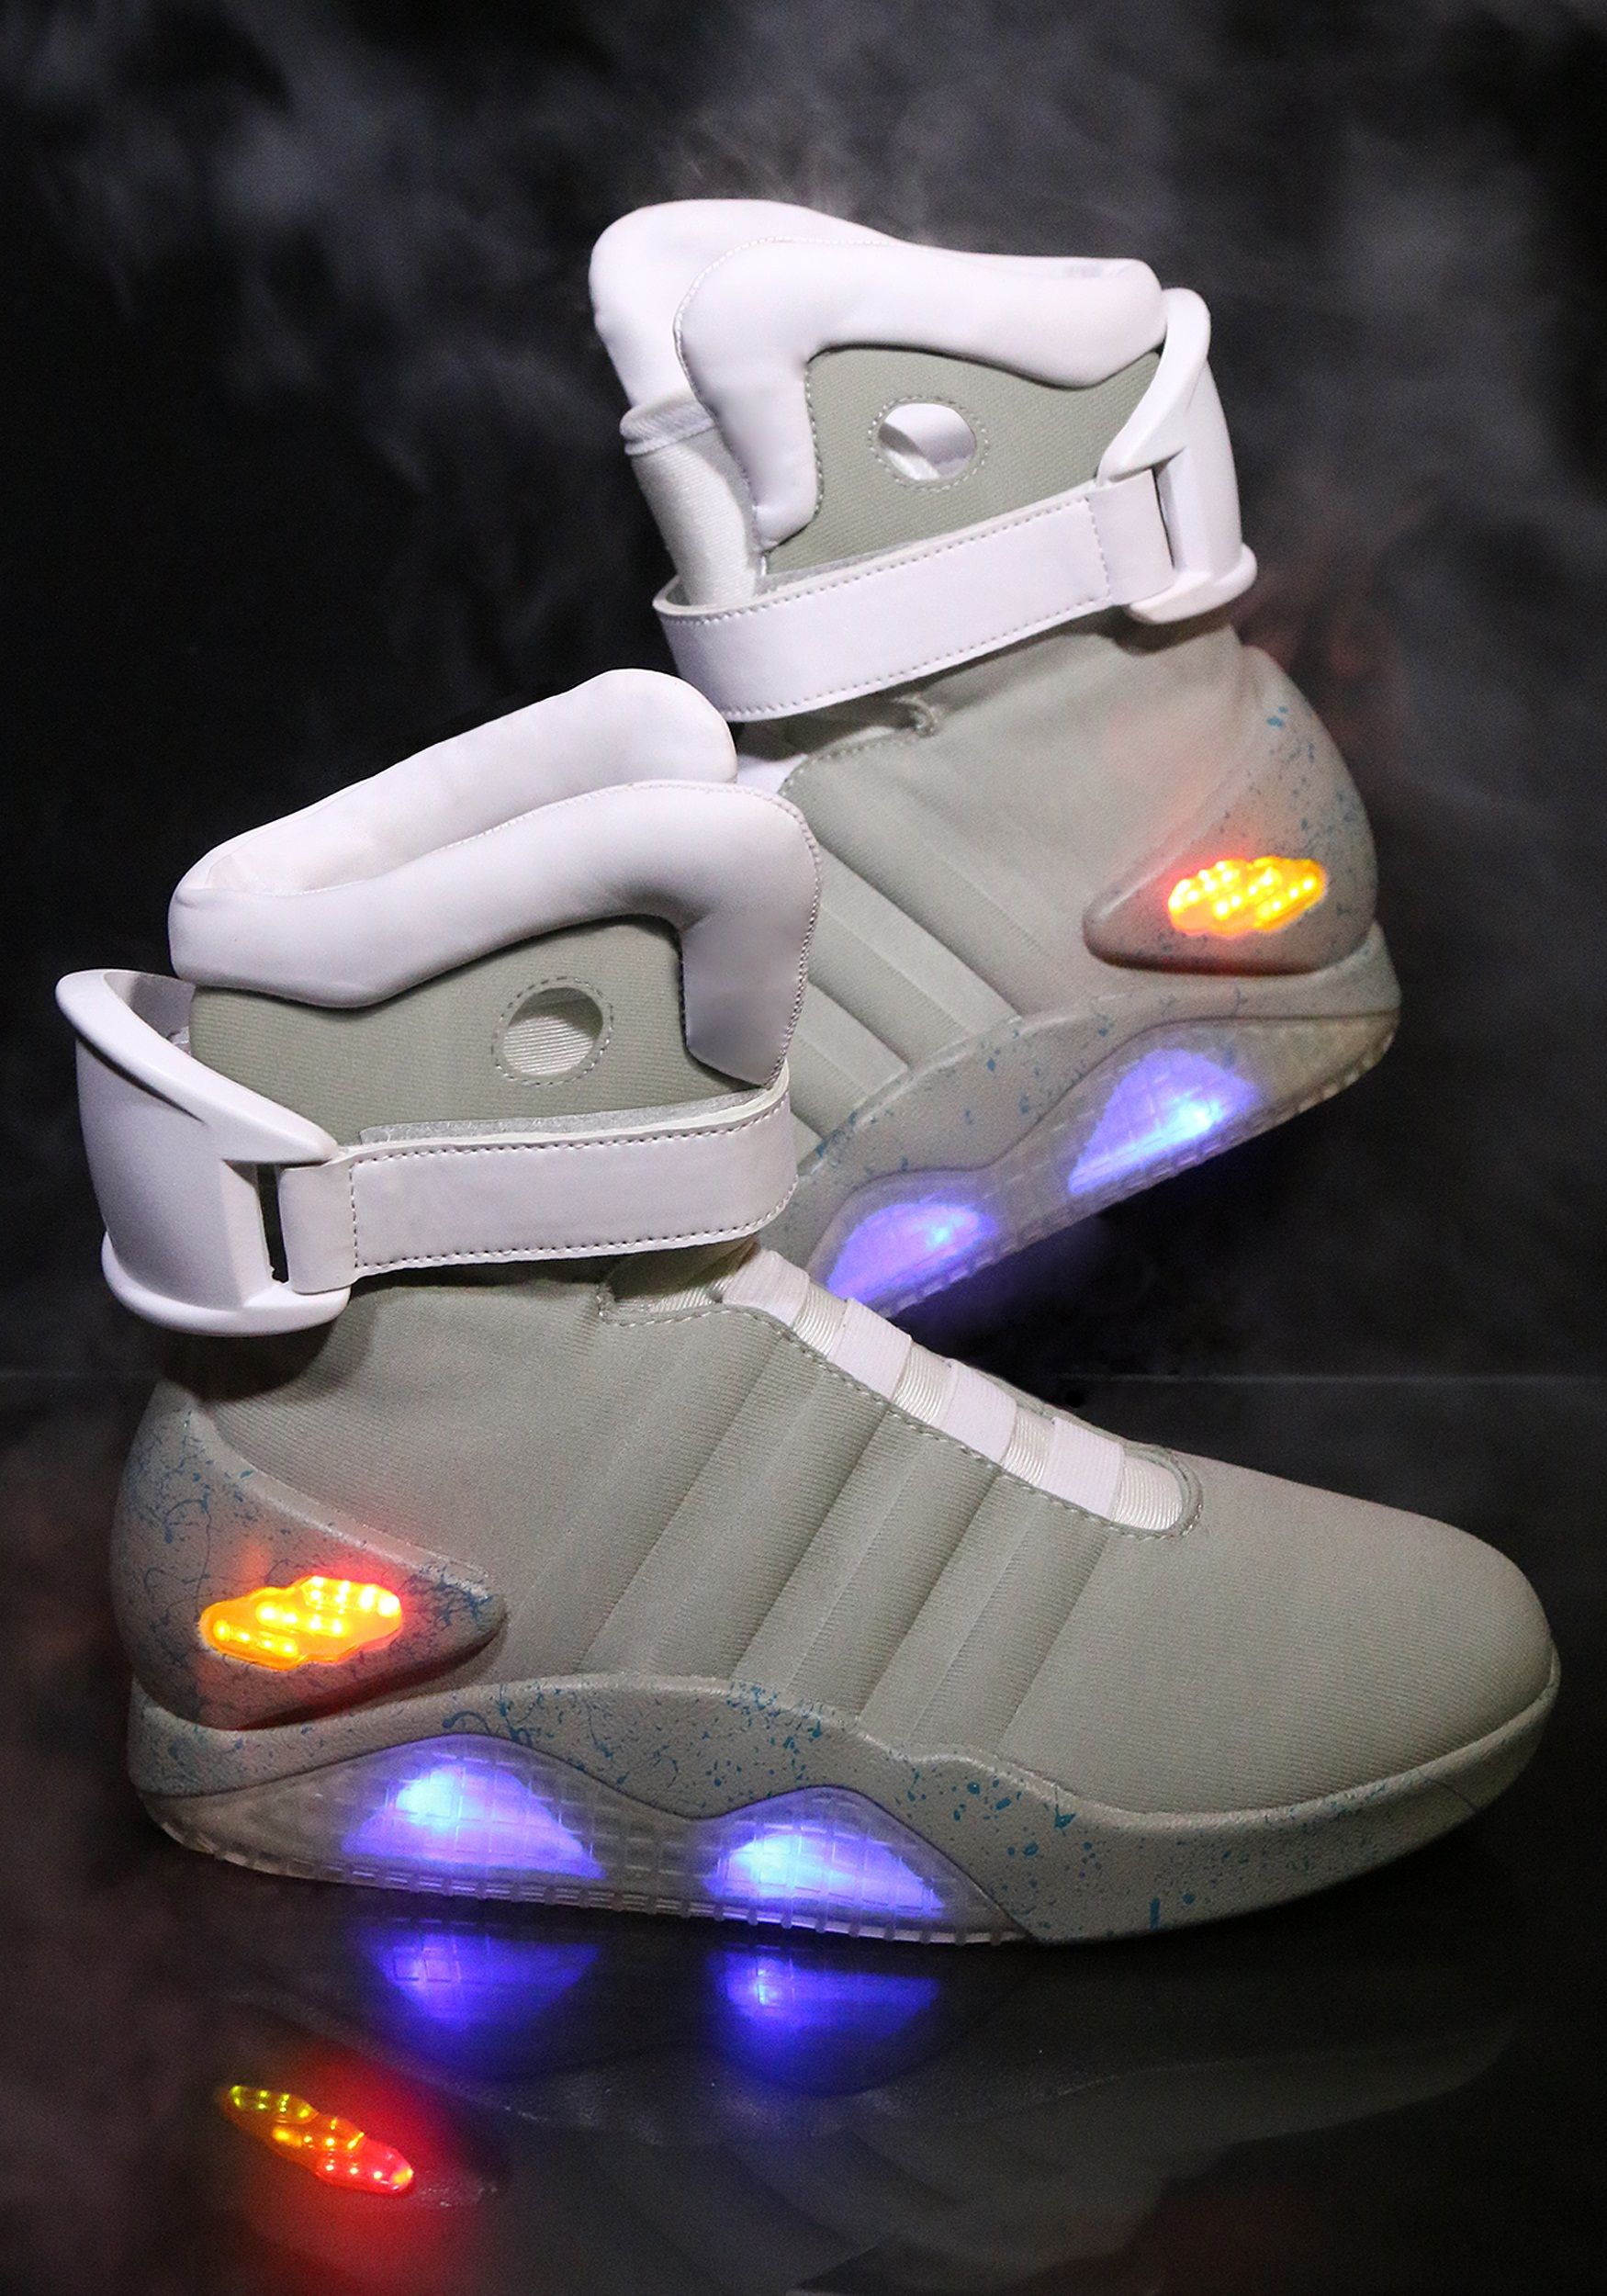 ef738c85327 Back to the Future 2 Light Up Shoes Now you can purchase Back To The Future  - Marty McFly s light up shoes. (well almost)  tech  geek